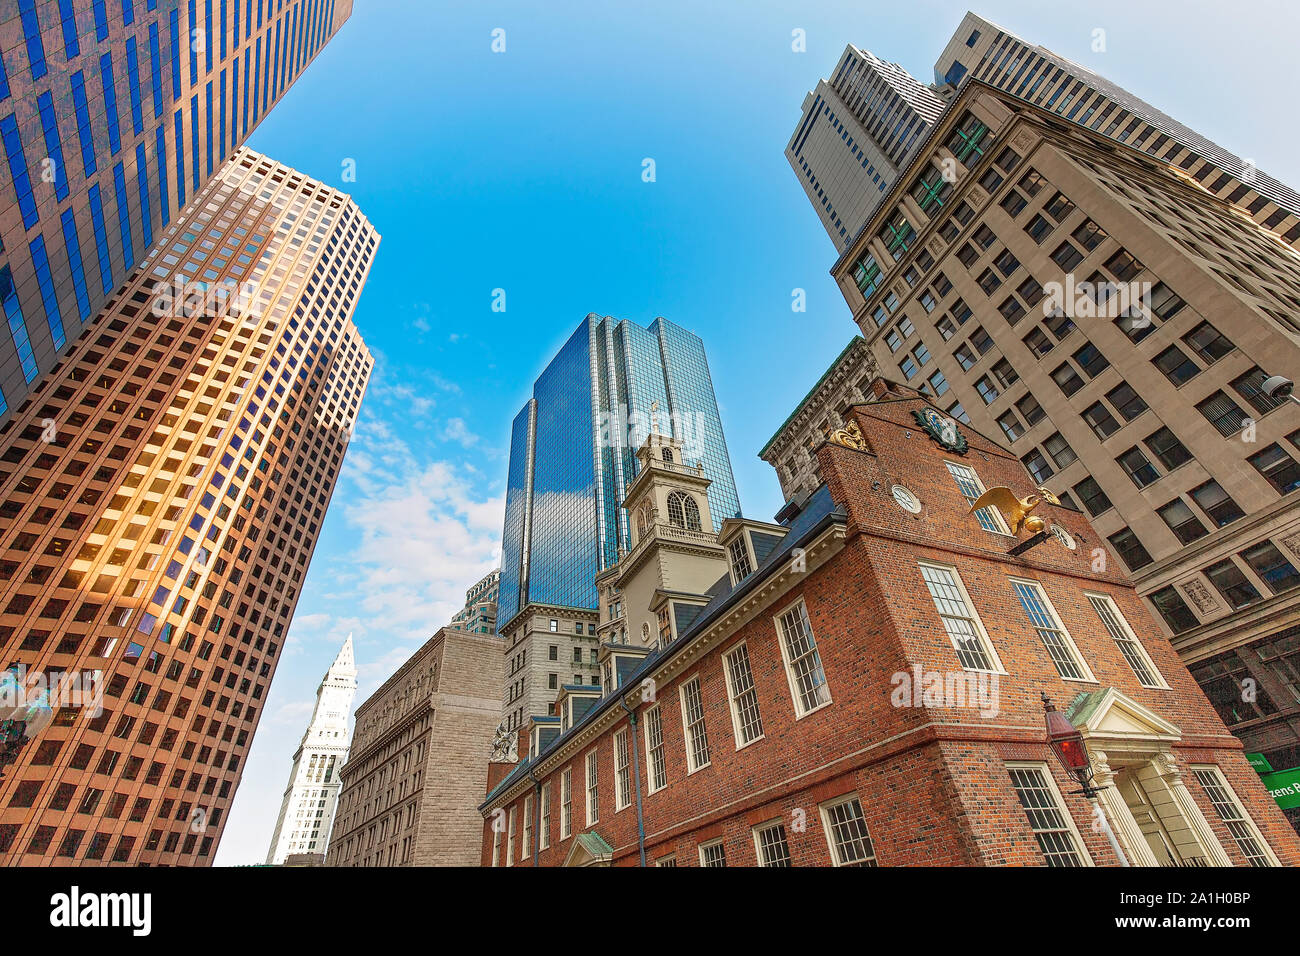 Massachusetts Old State House in Boston historic city center, located close to landmark Beacon Hill and Freedom Trail Stock Photo